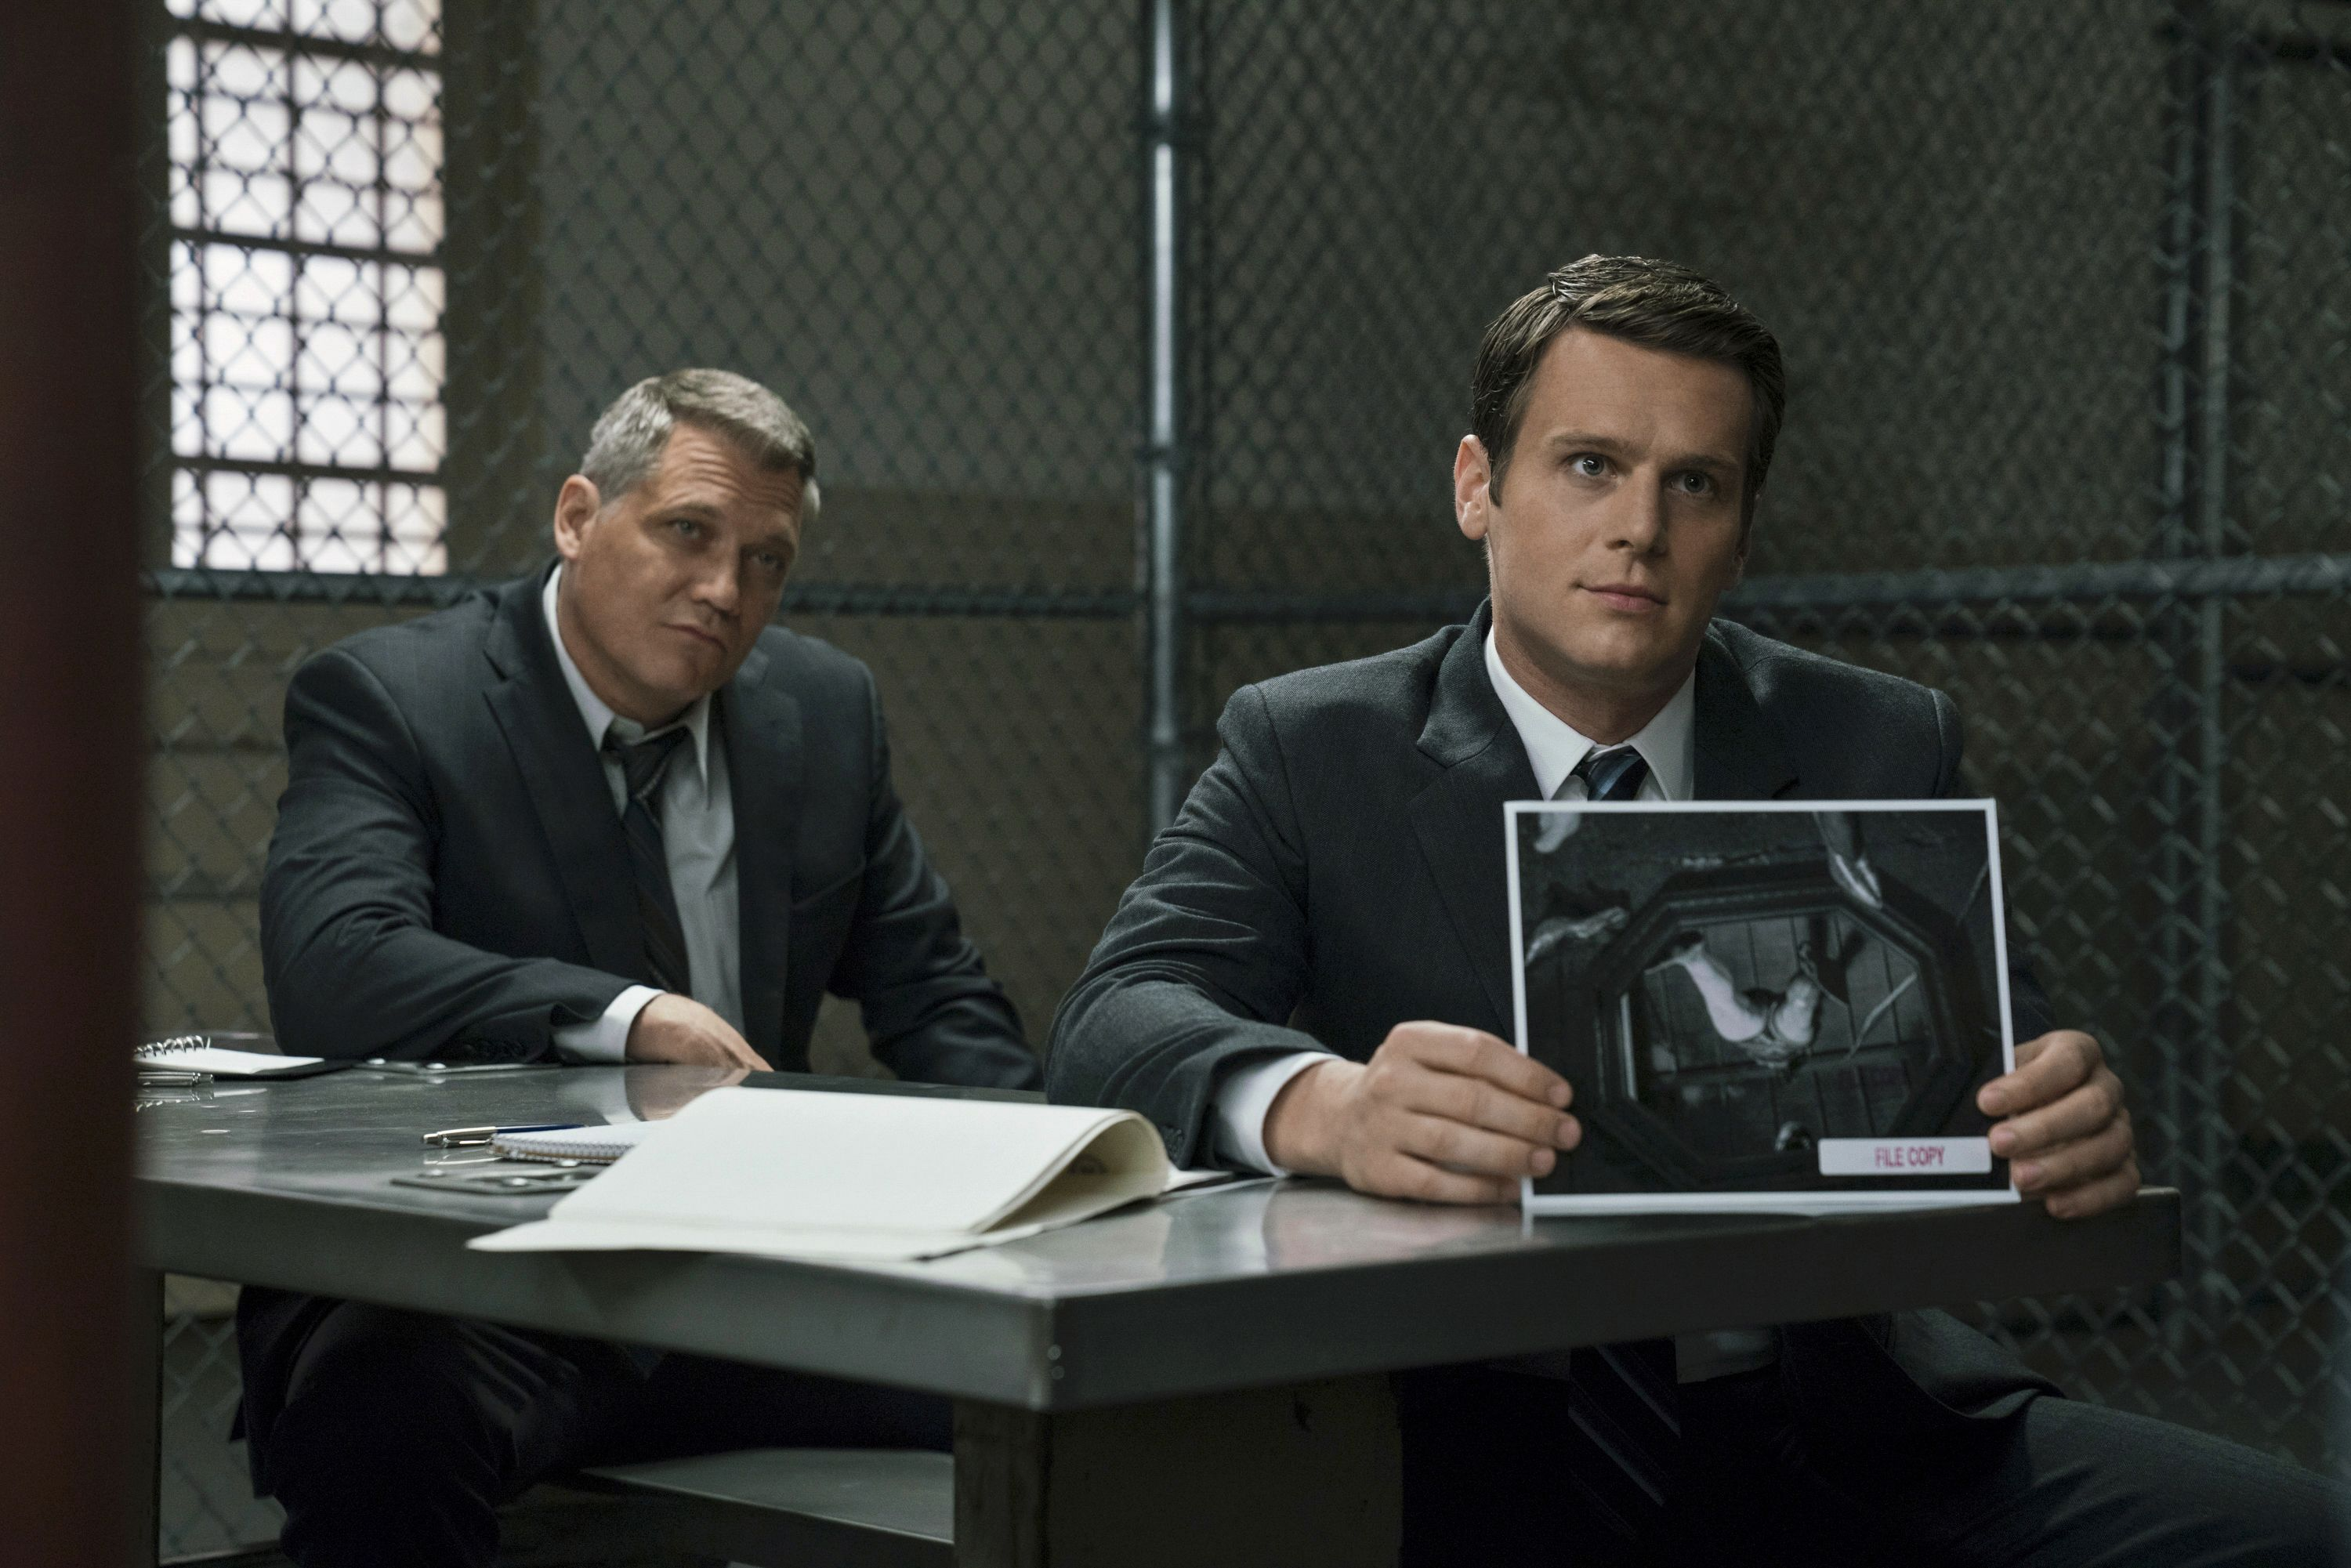 The True Story of 'Mindhunter' Is Freaking Me TF Out